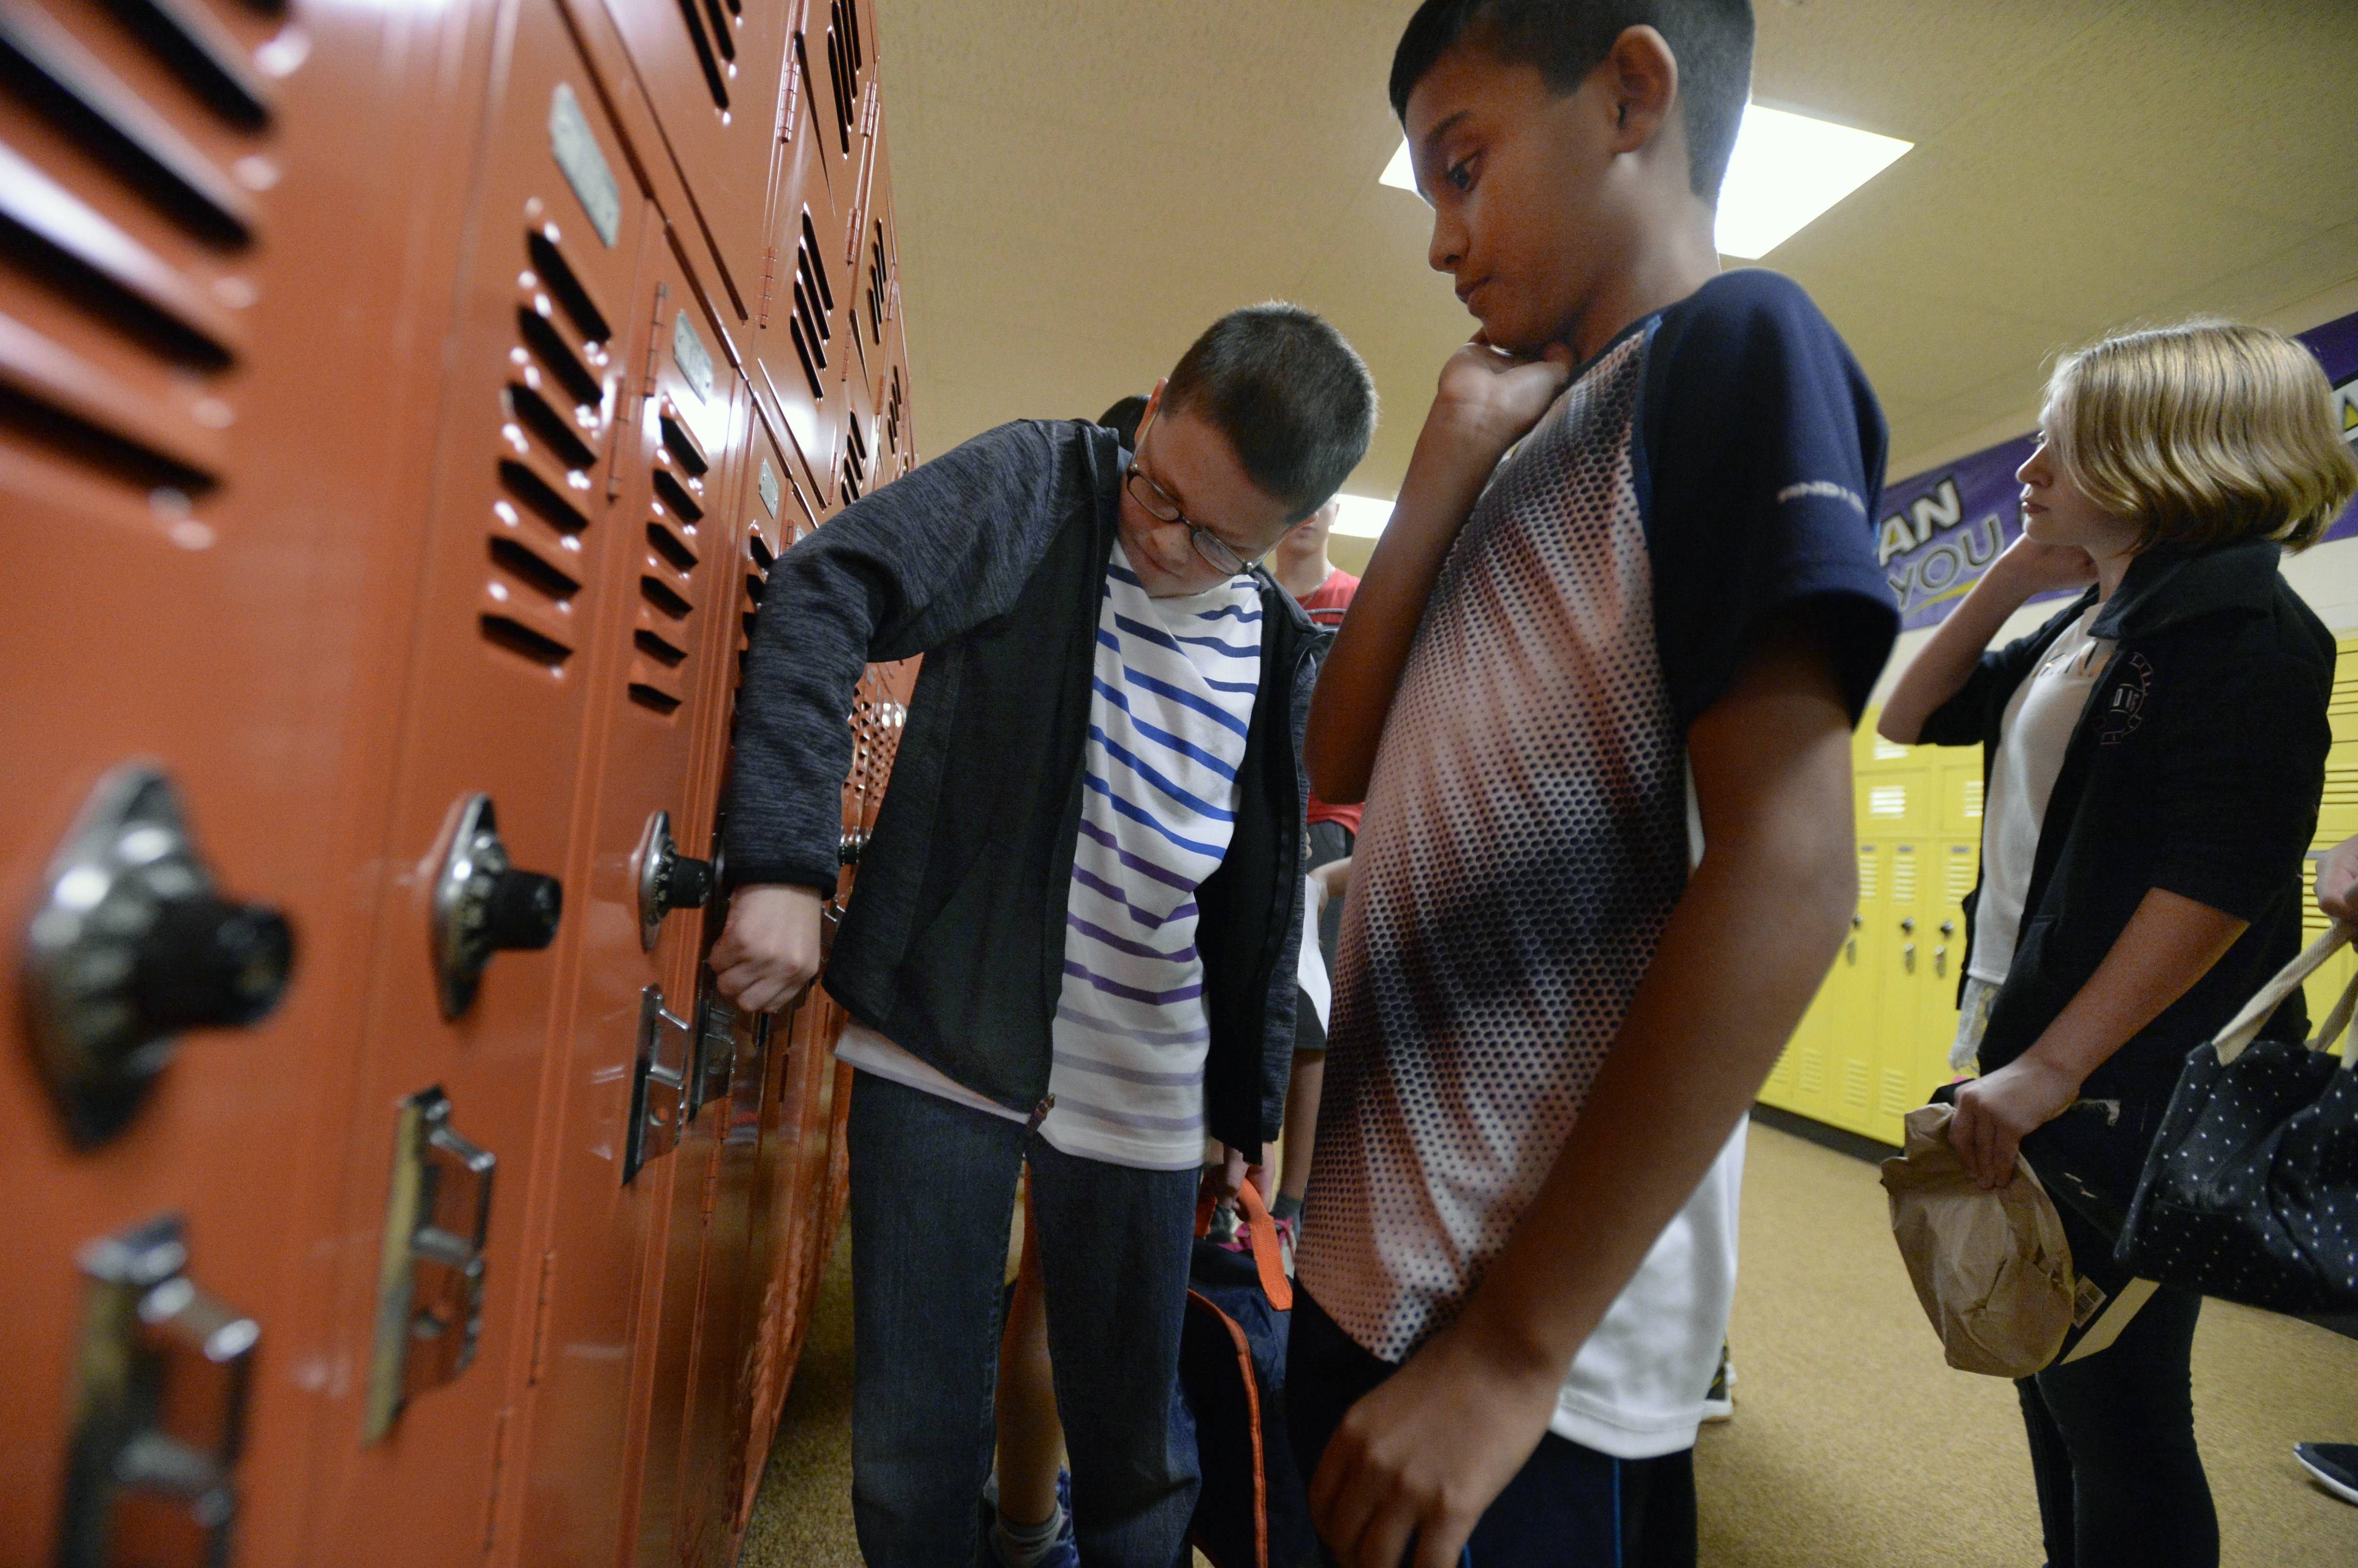 The first day at Mead Junior High in Elk Grove Village Monday brings on life's little problems, like a stuck locker, as Jack Jambrone, 12, helps out fellow seventh-grader Krishan Desai, 12.